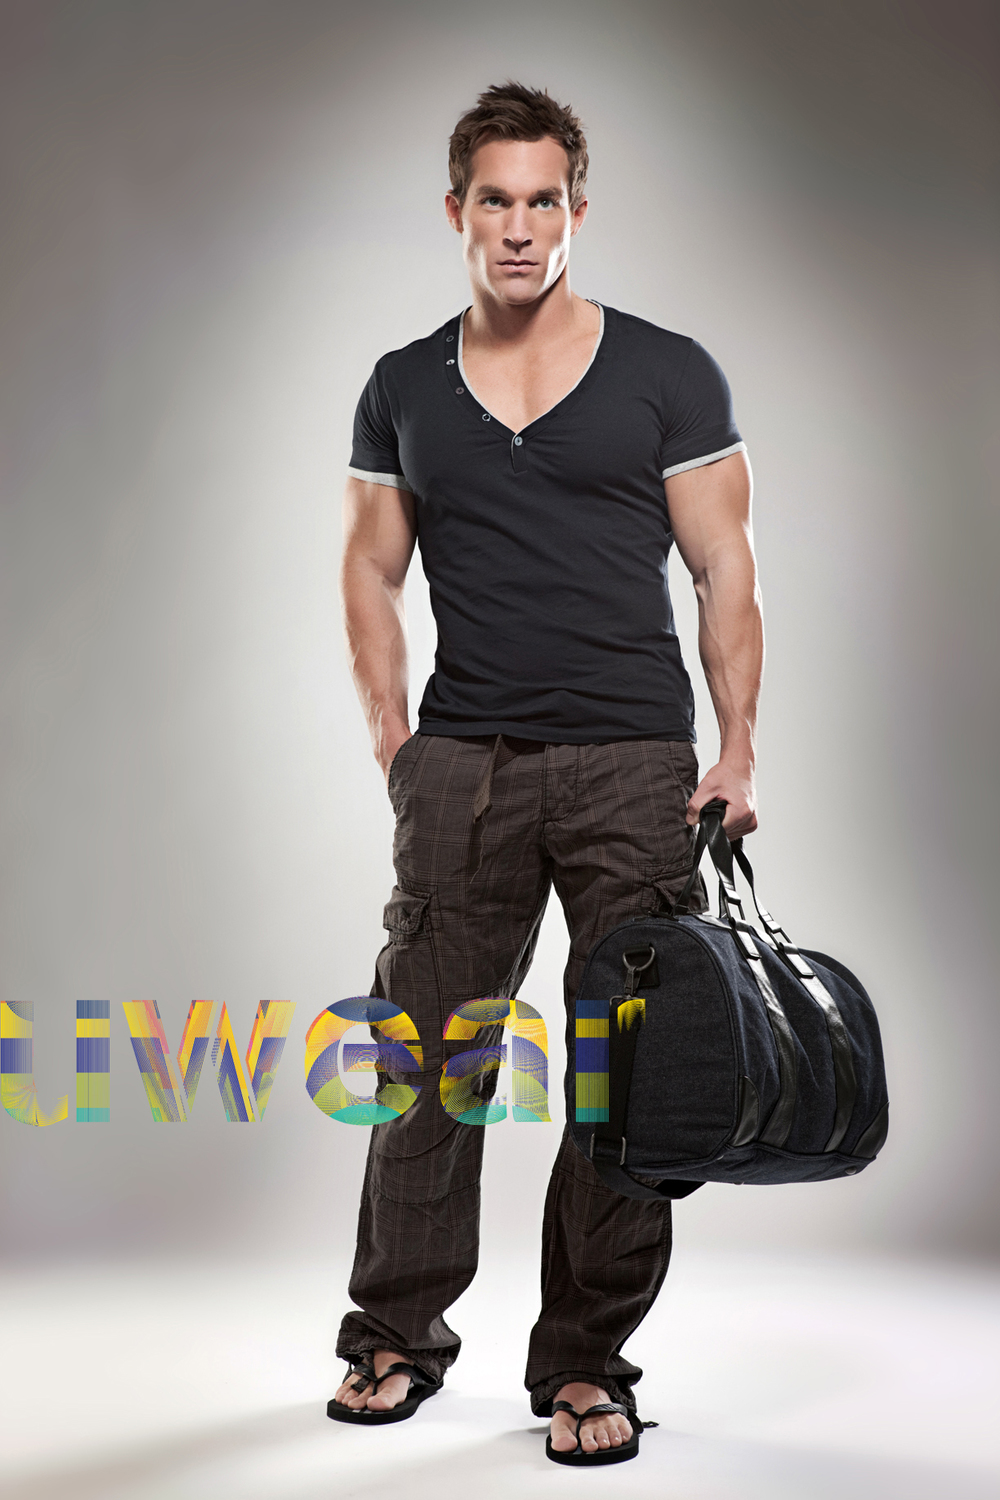 Uwear Campaign Photographed by Bradford Rogne